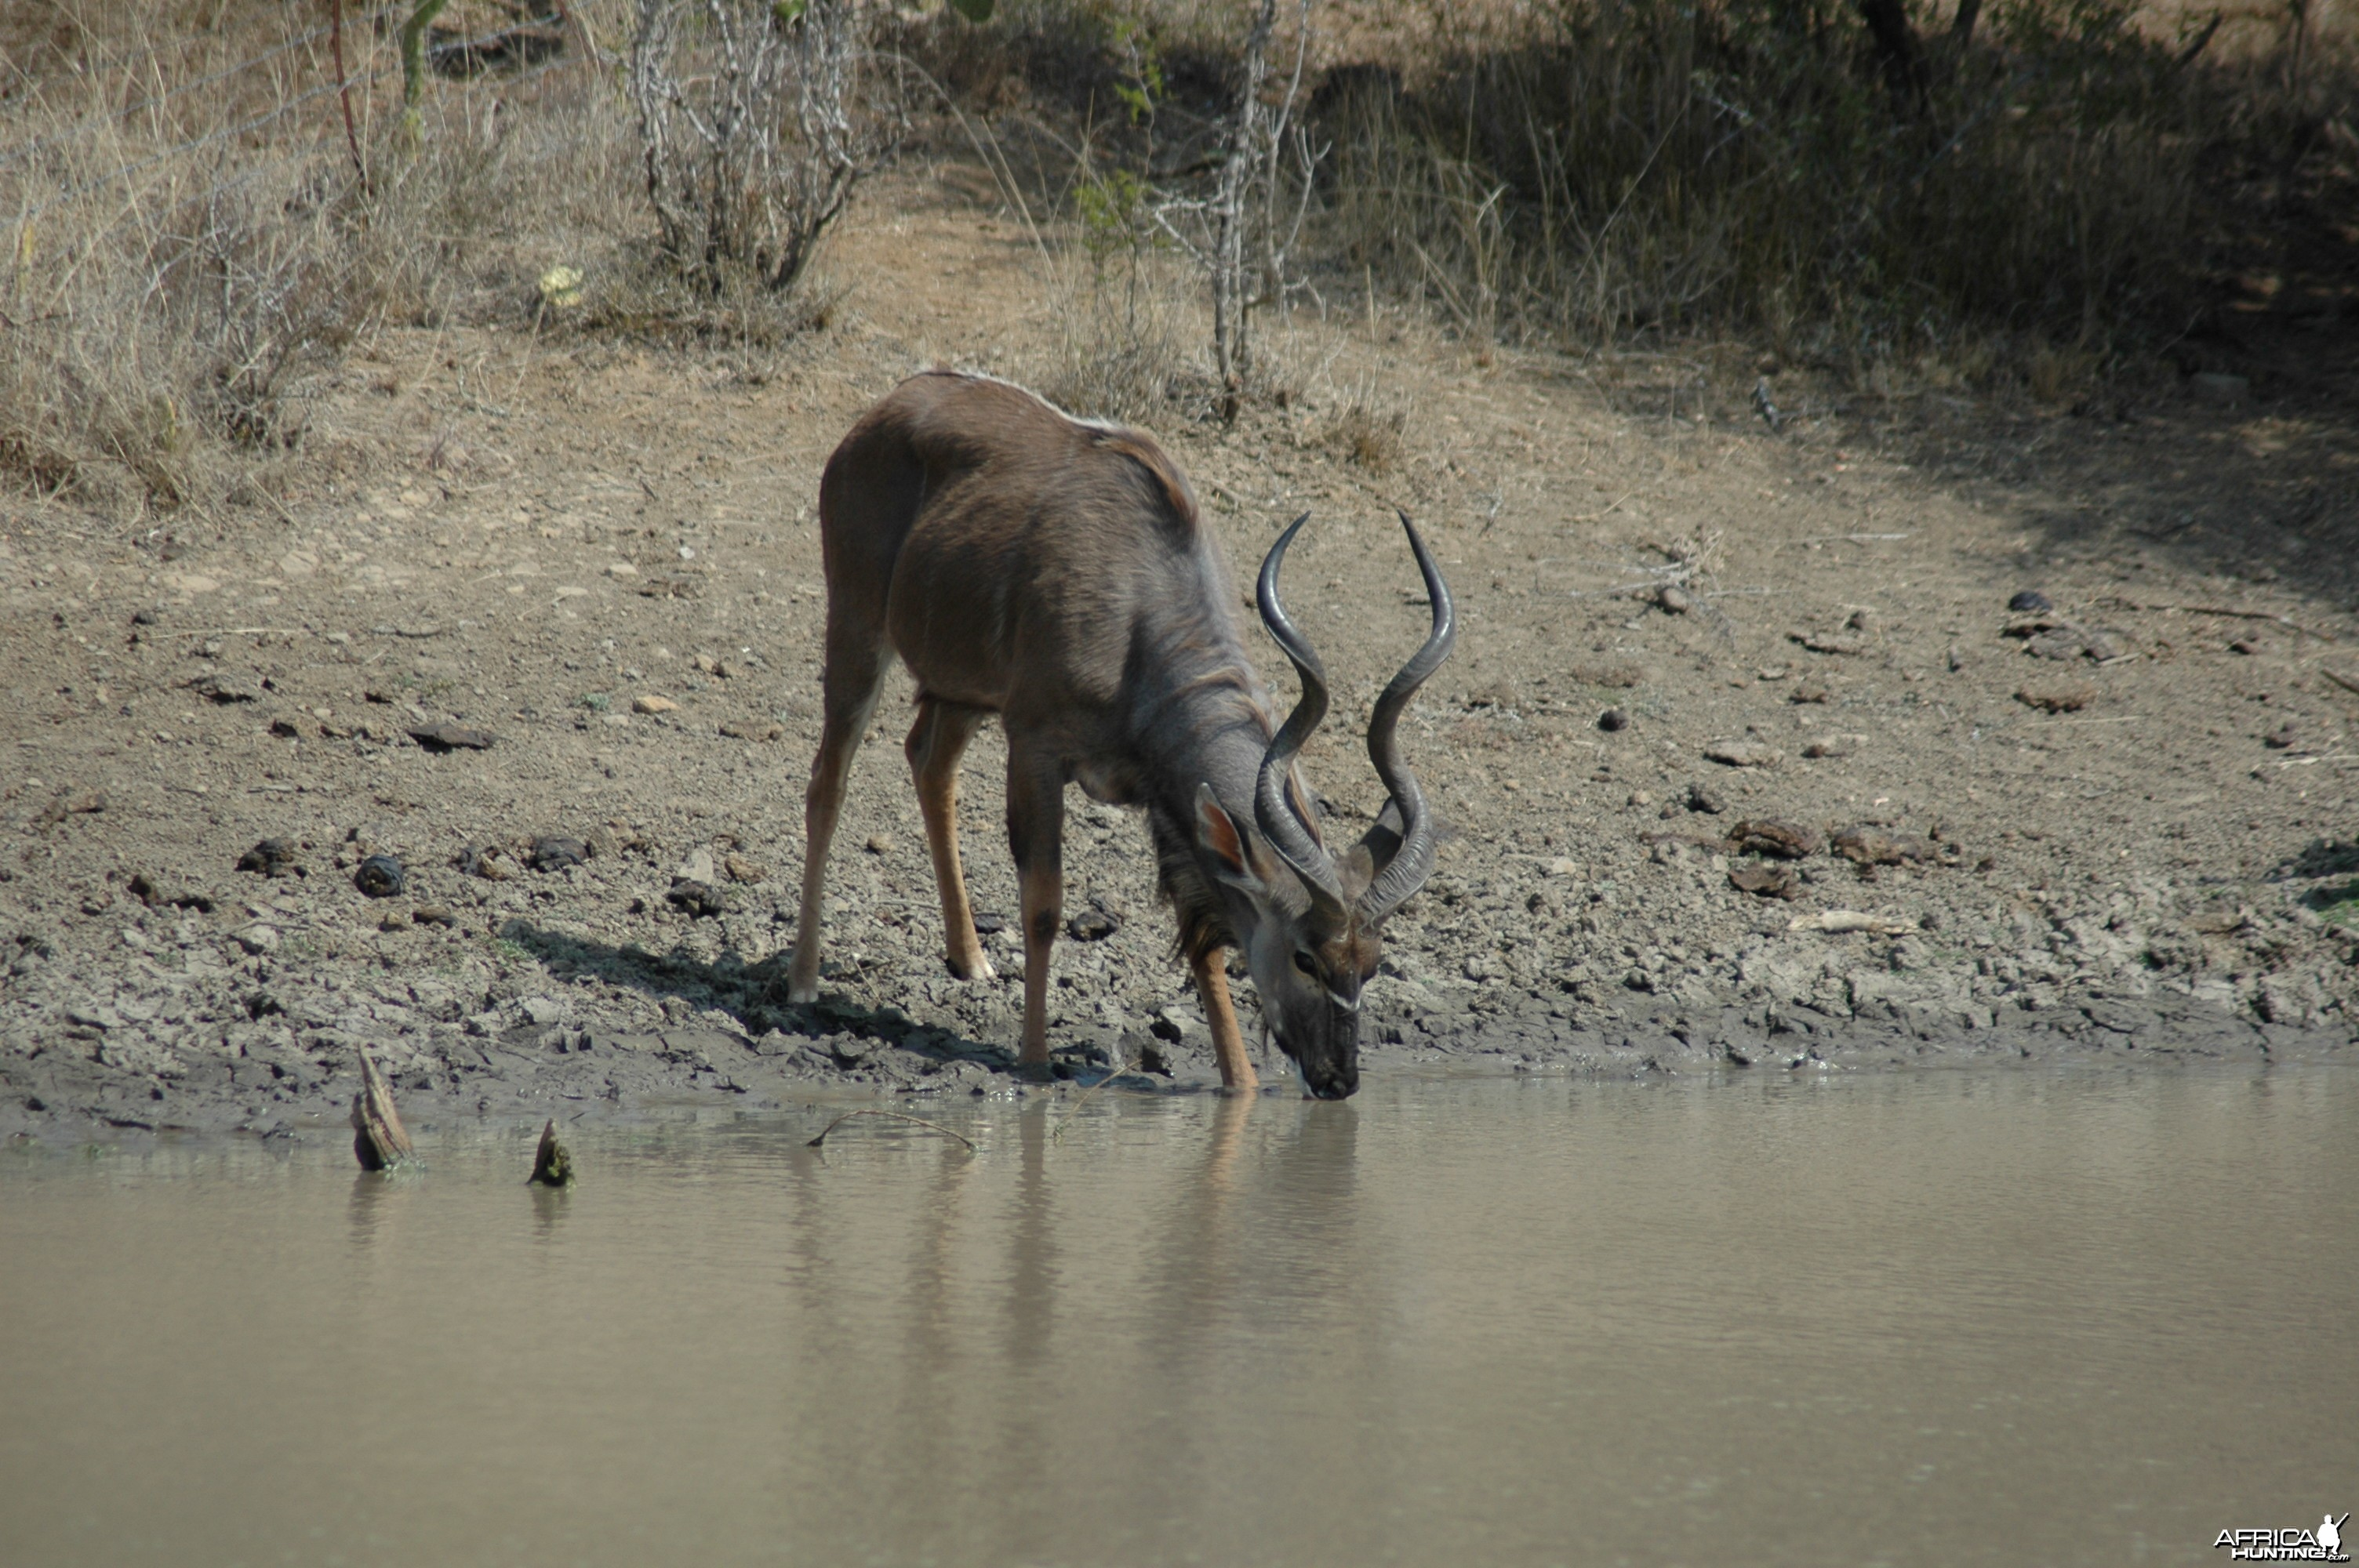 Kudu at pond, Eastern Cape, South Africa